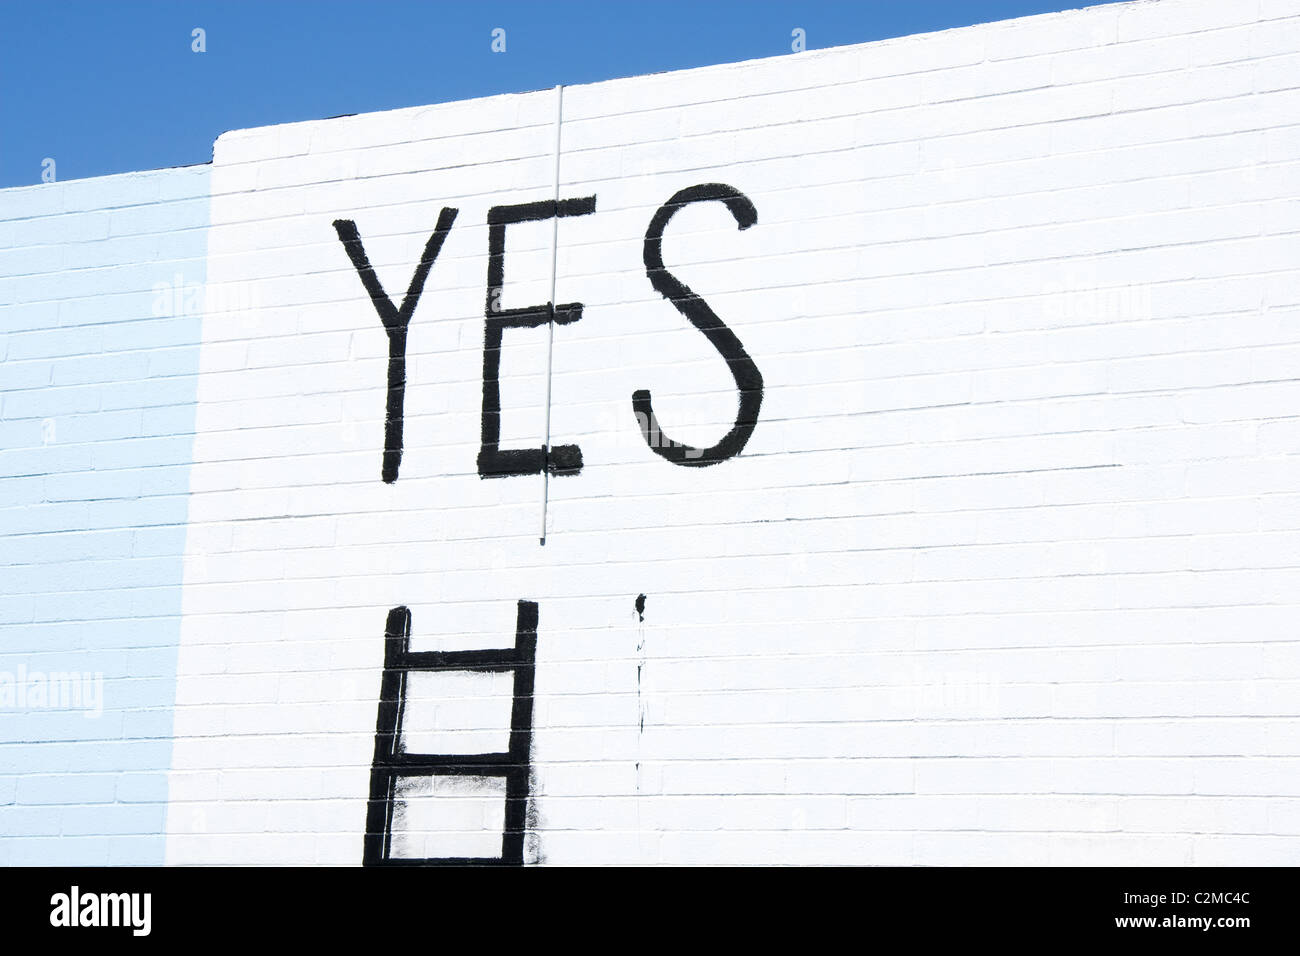 Word yes written on a wall - Stock Image